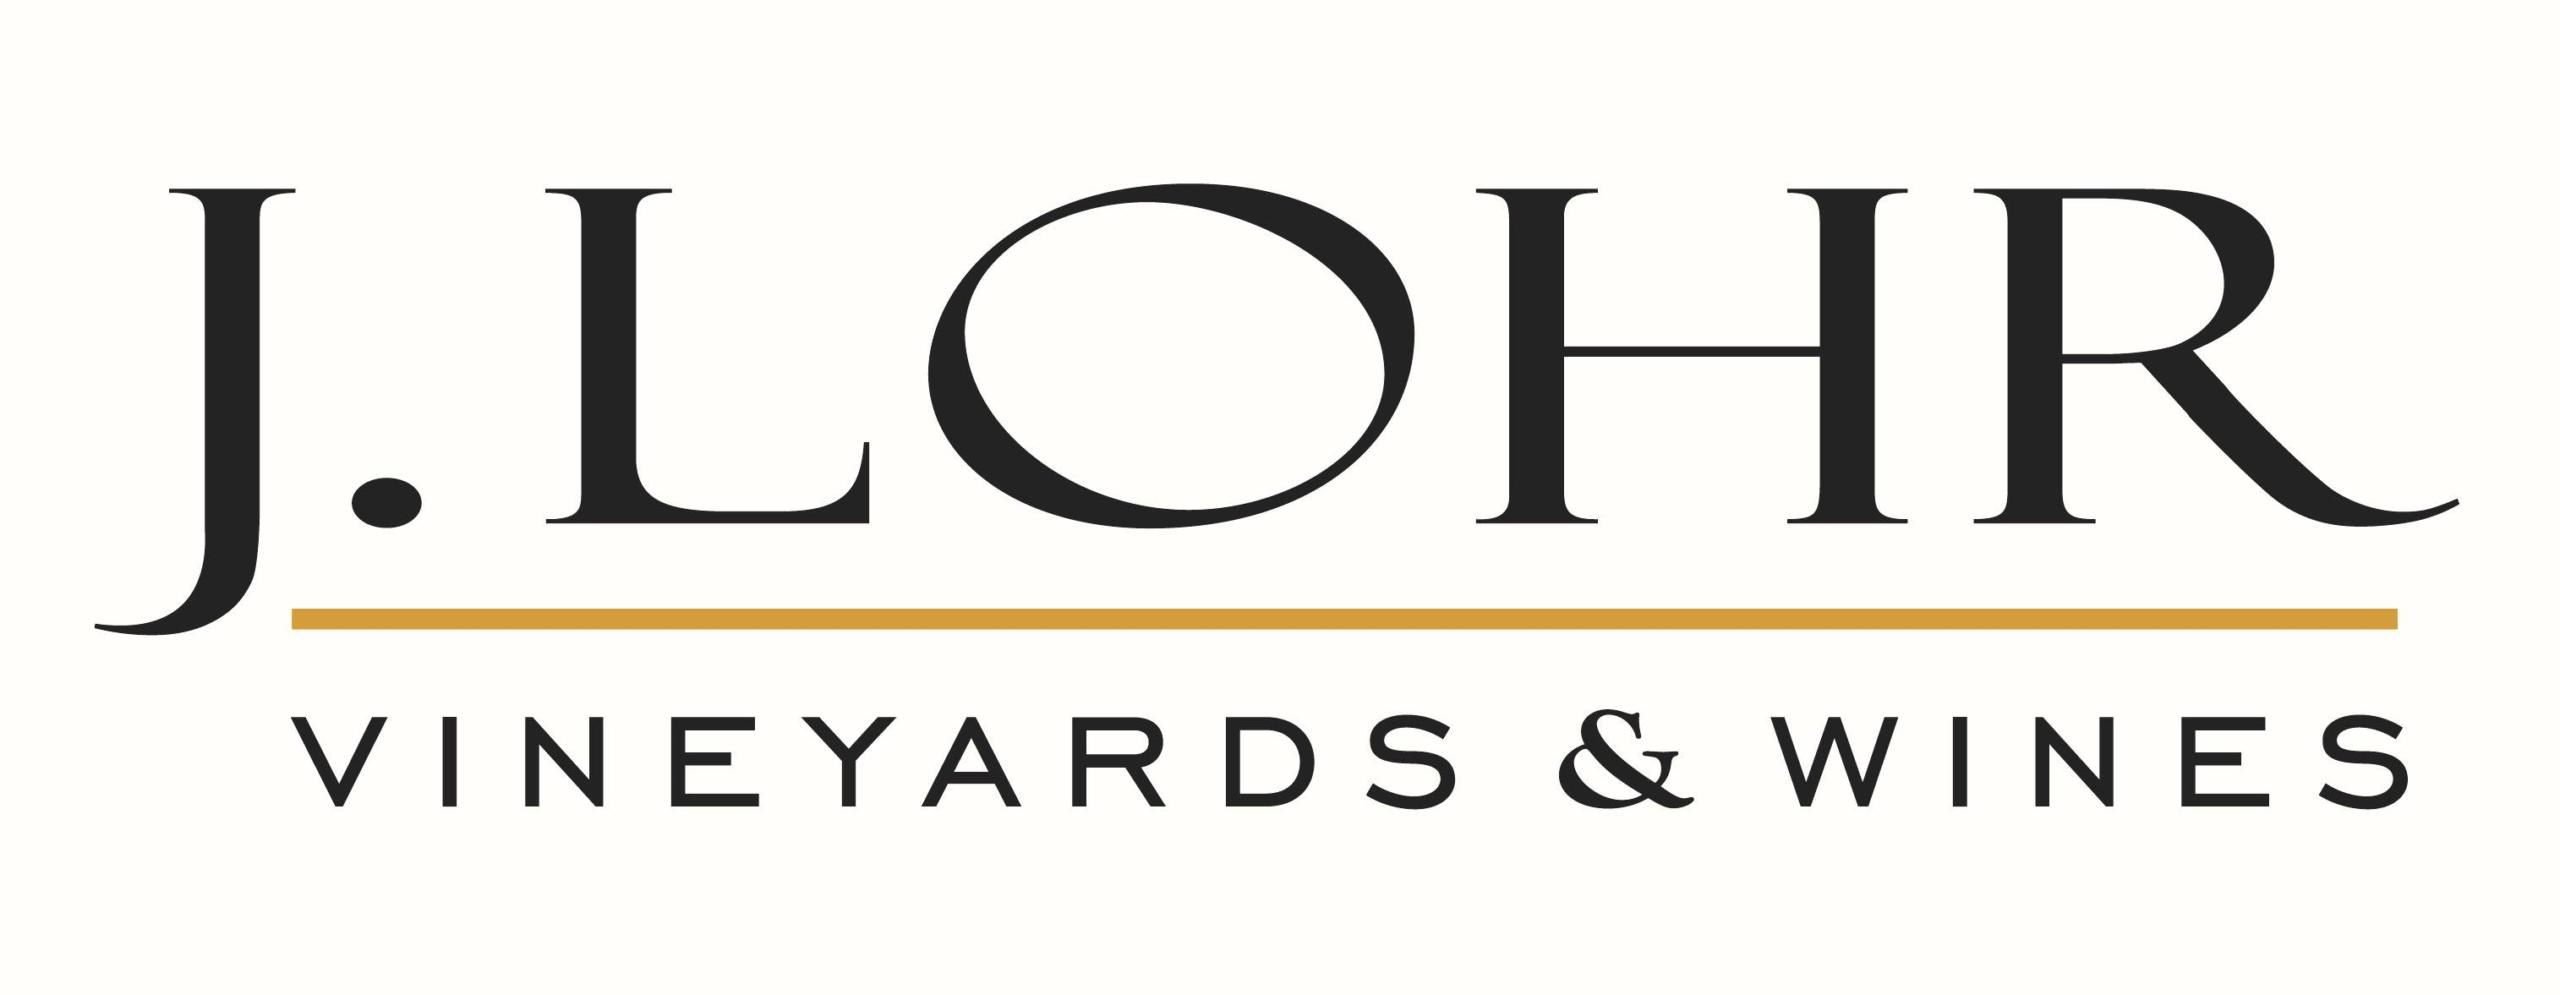 J. Lohr Vineyards & Wines